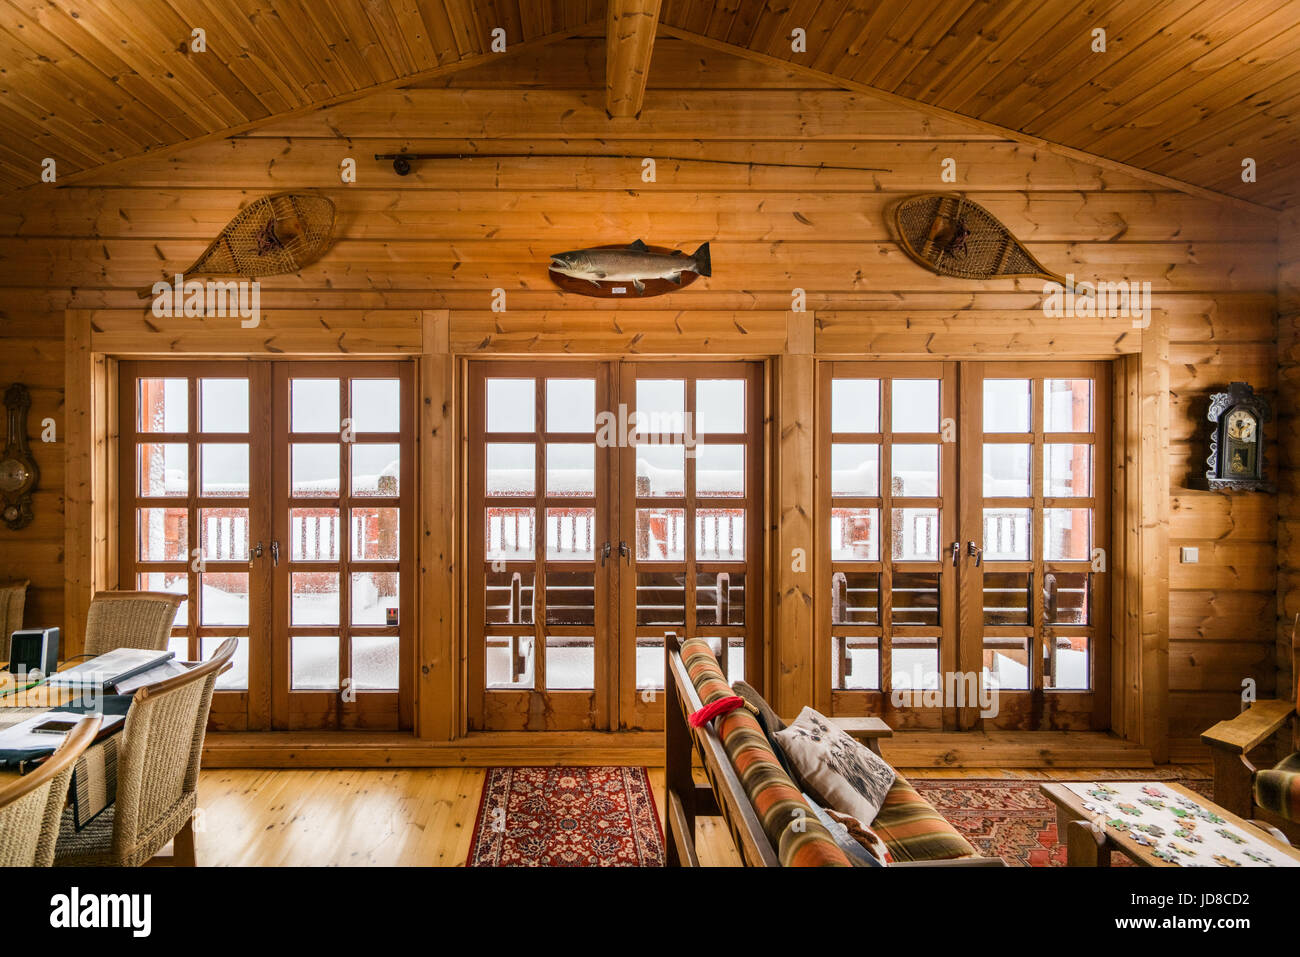 Wood Clad Lliving Room And Doors In Log Cabin, Iceland, Europe. Iceland  Nature 2017 Winter Cold